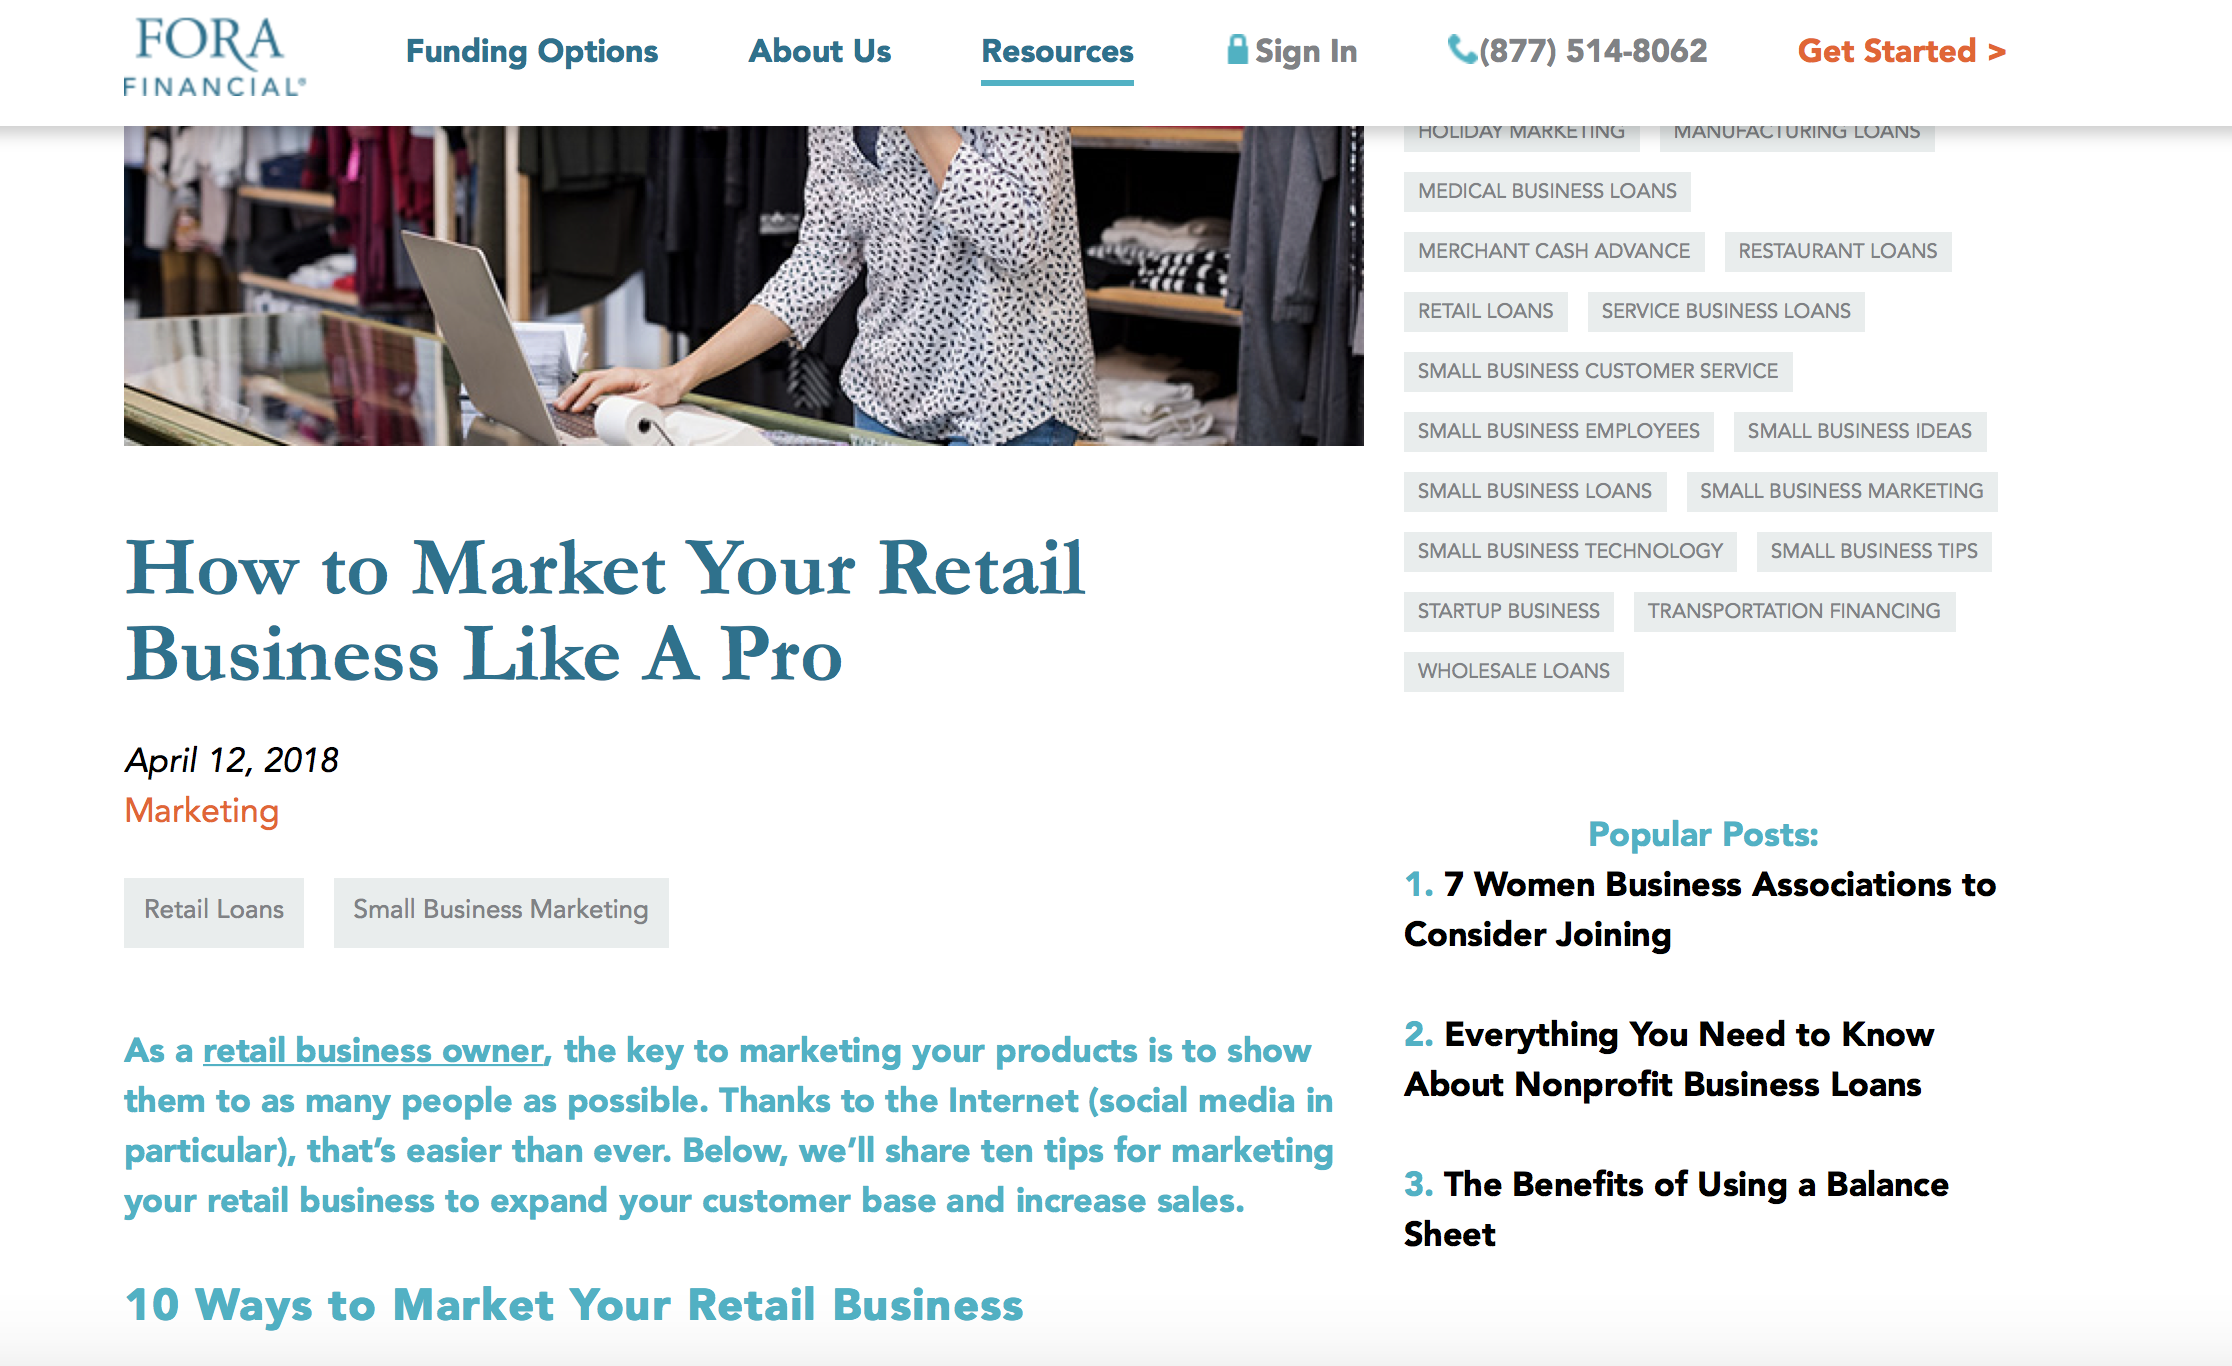 How to Market Your Retail Business Like a Pro || Fora Financial